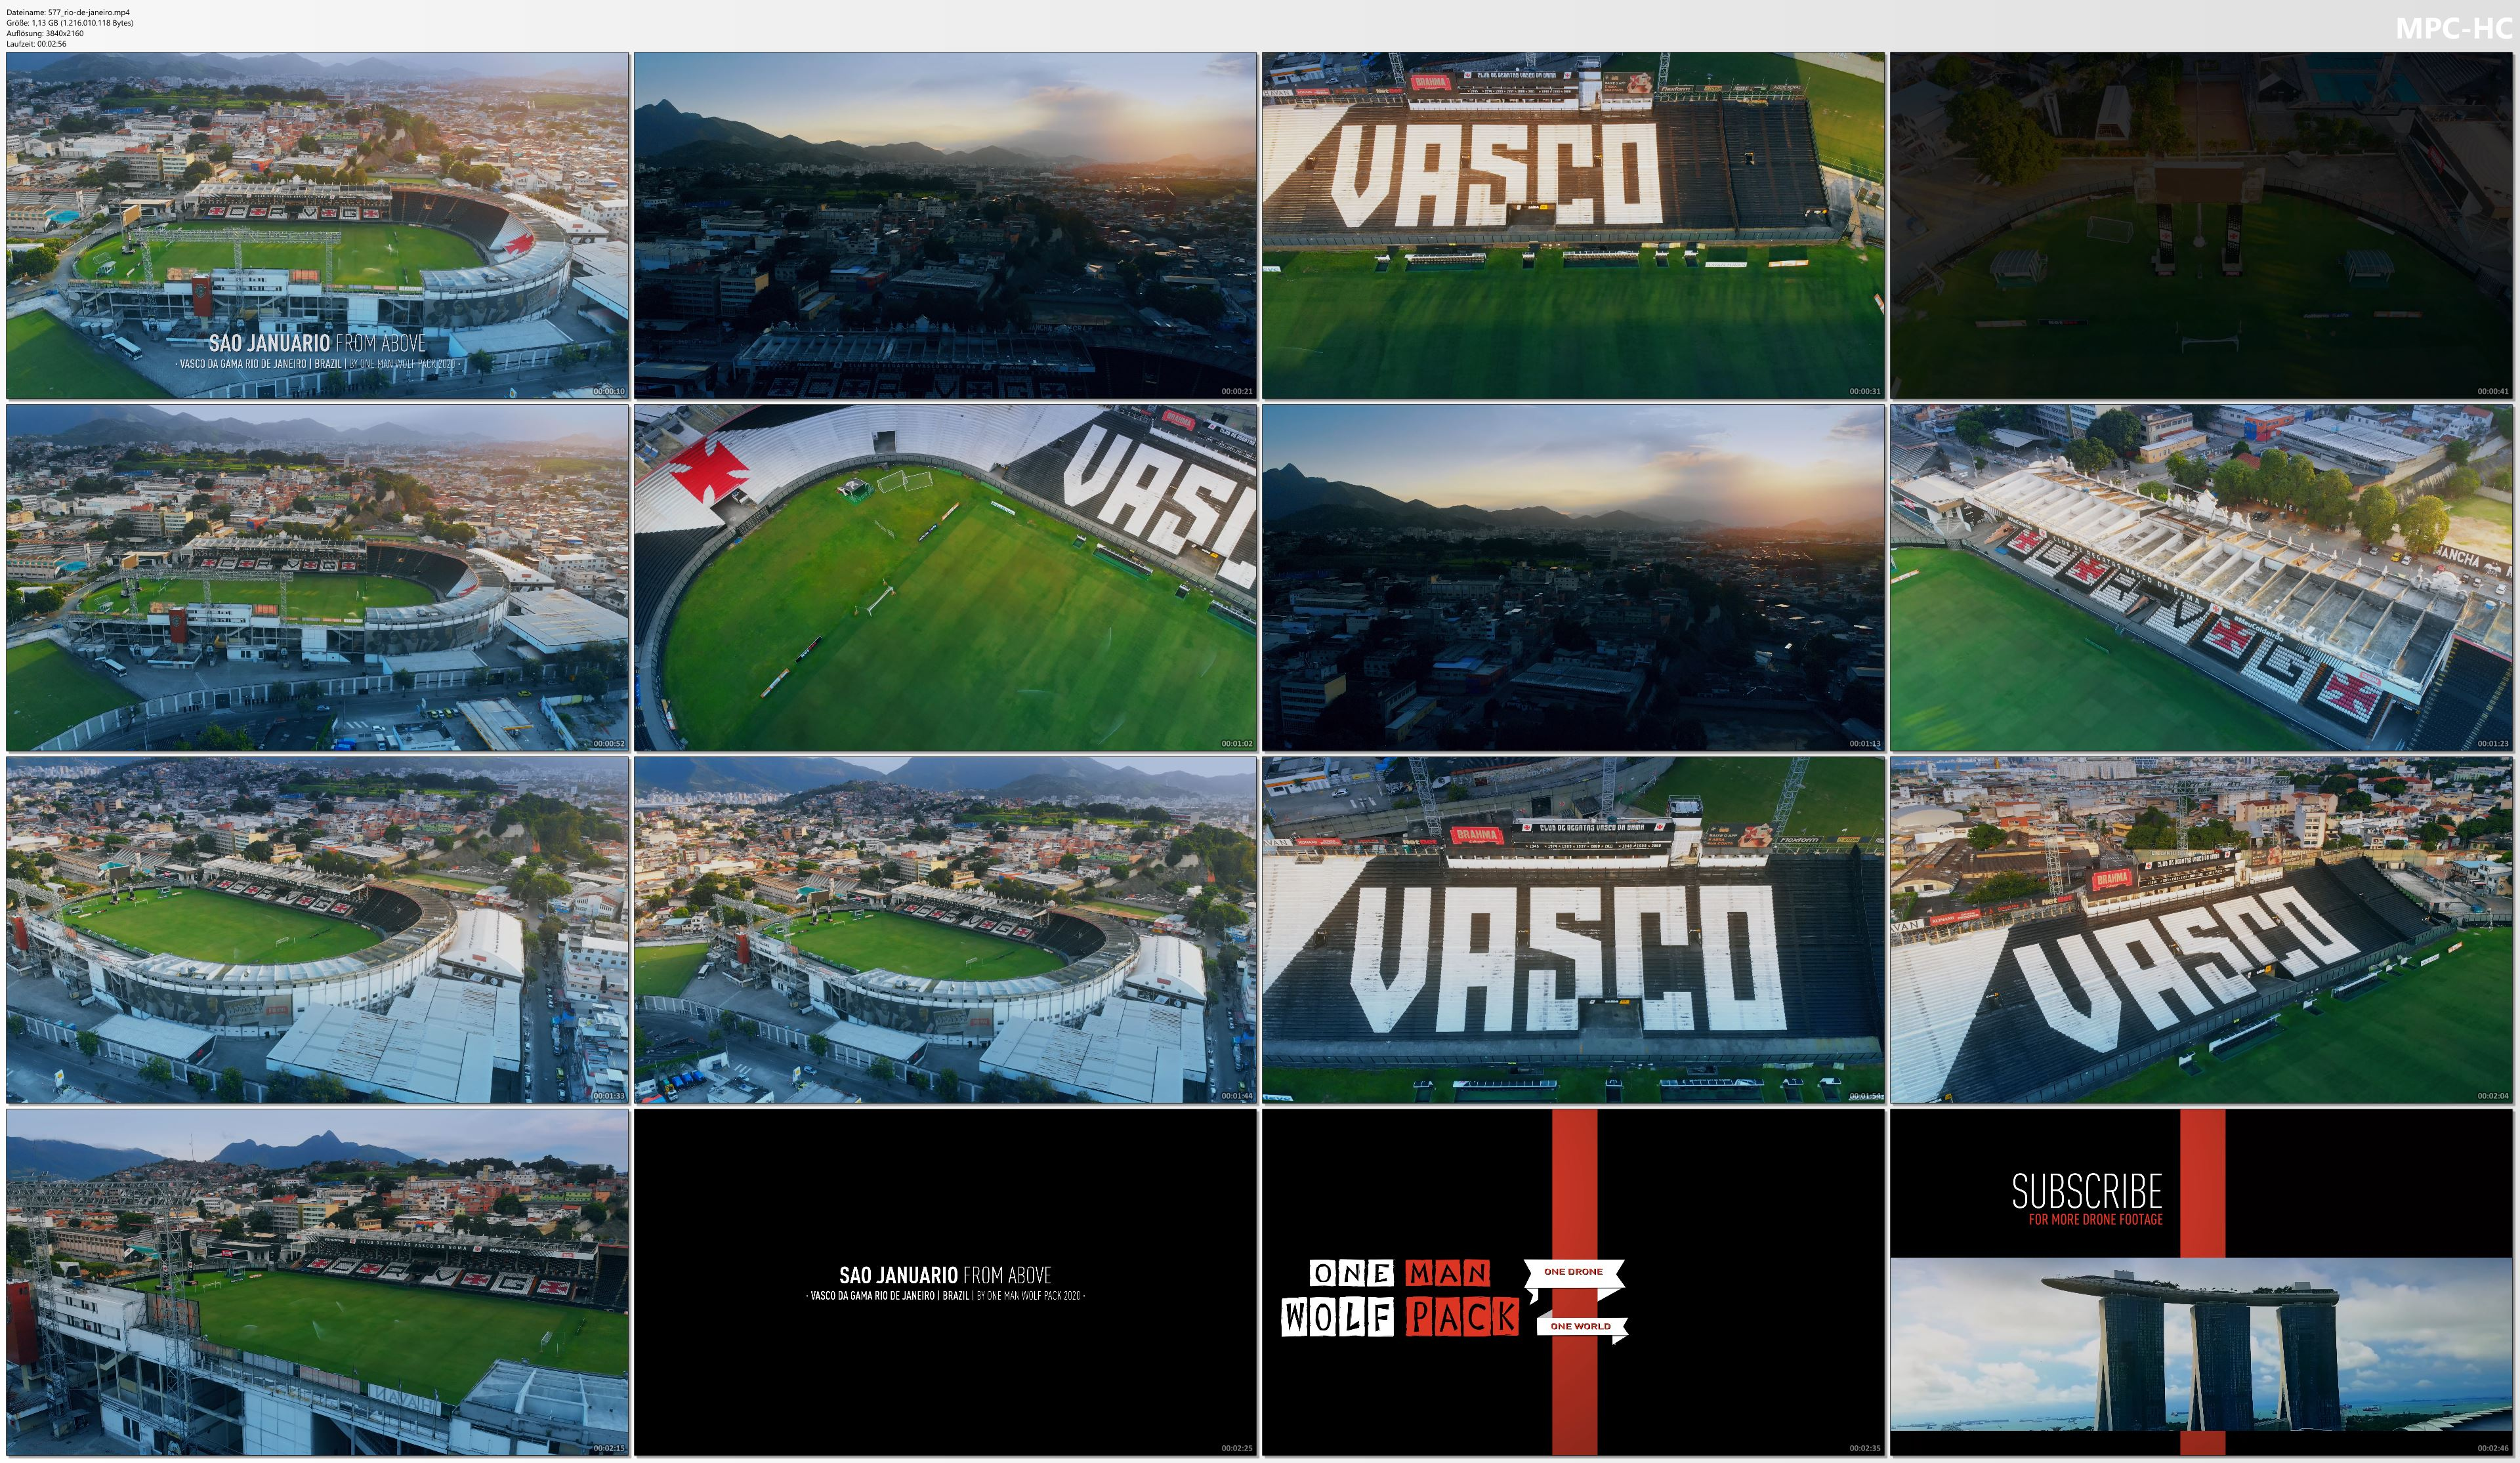 Drone Pictures from Video 【4K】Estádio São Januário from Above - BRAZIL 2020 | Vasco da Gama Cinematic Wolf Aerial™ Drone Film